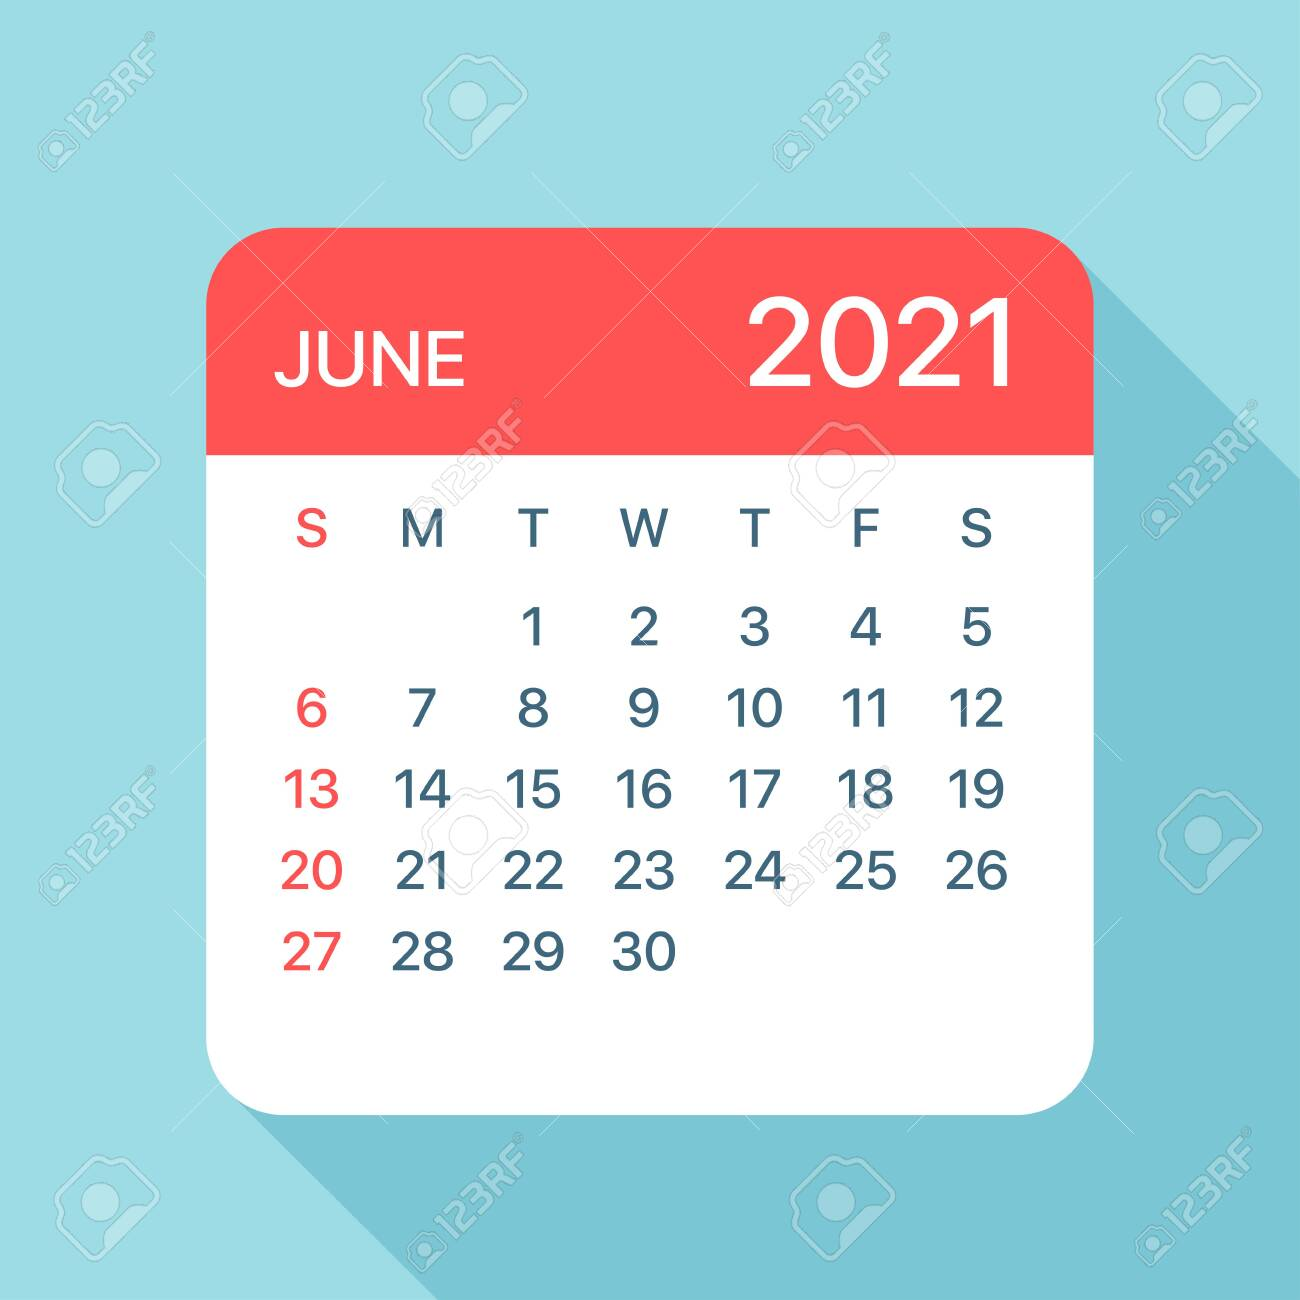 June 2021 Calendar Clipart June 2021 Calendar Leaf   Illustration. Vector Graphic Page